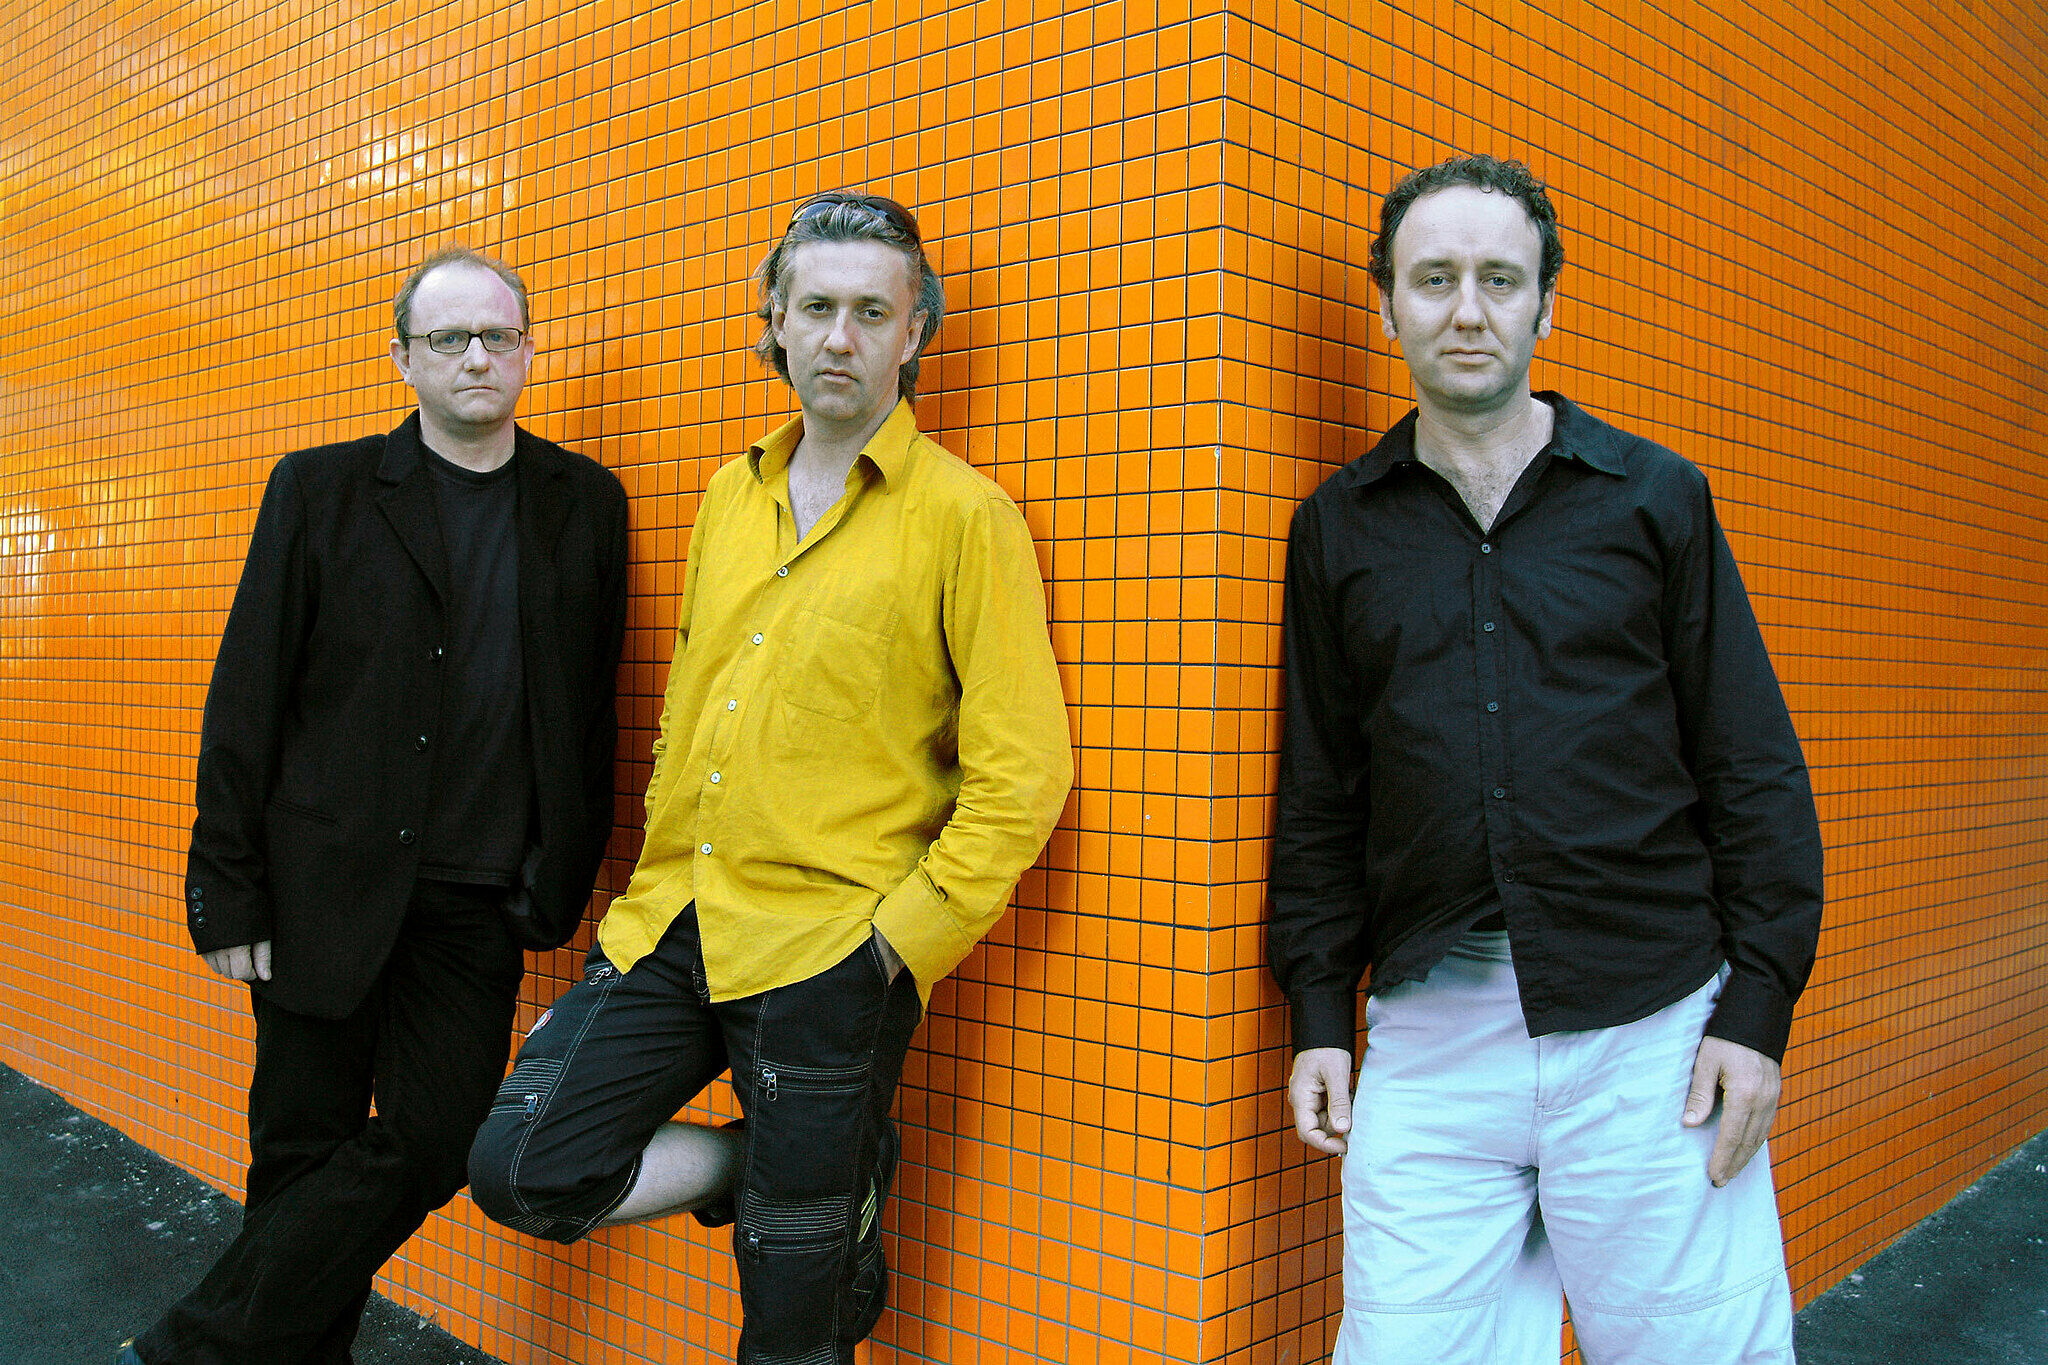 The Necks band leaning against an orange wall.